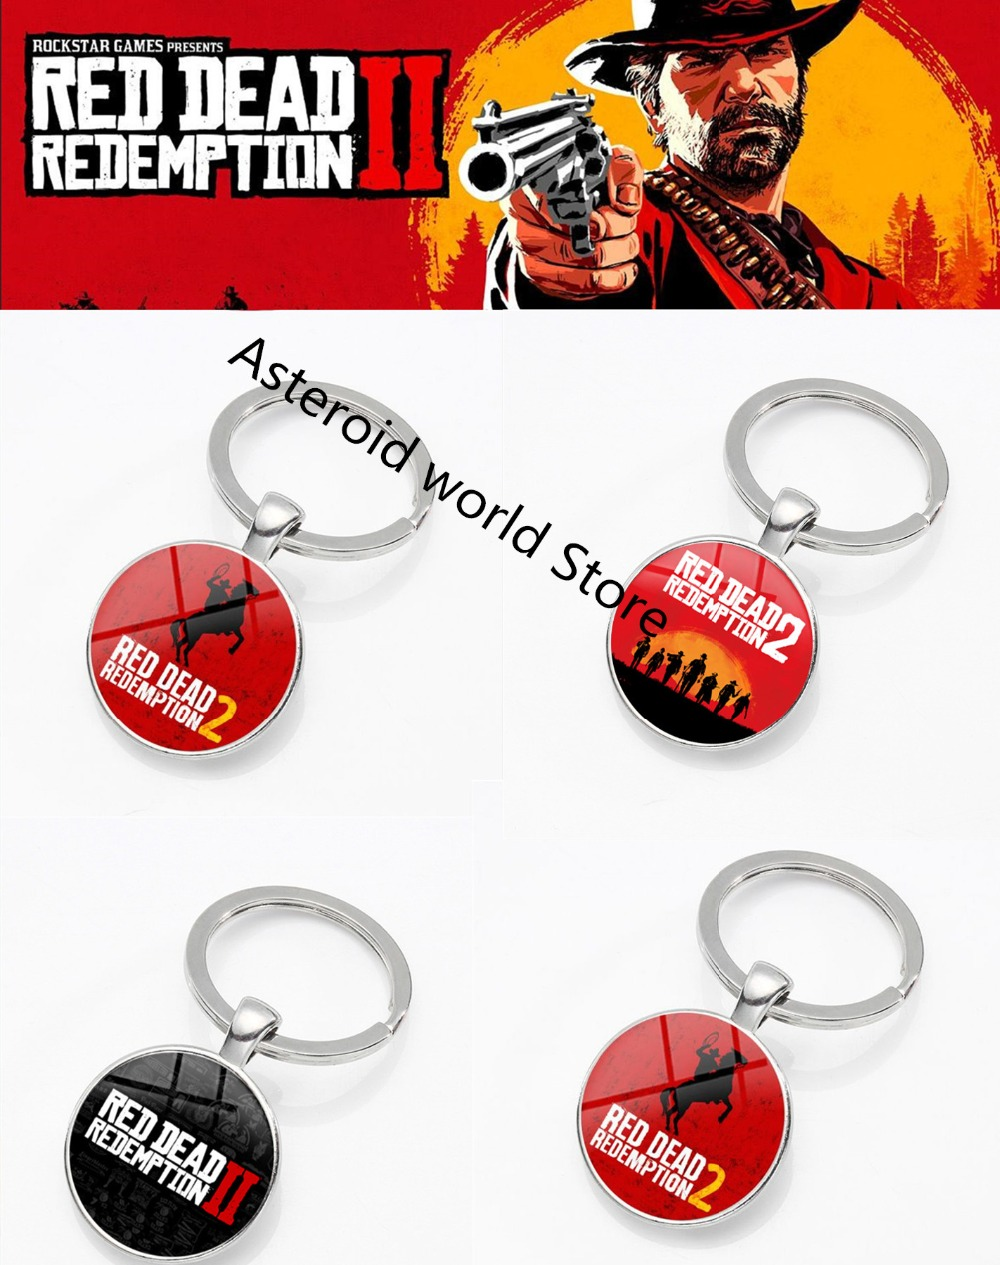 Costume Props Imported From Abroad New Game Red Dead Redemption 2 Keychain Metal Key Ring Chain 3d Gun For Men Car Women Bag Jewelry Souvenir Chaveiro Llaveros